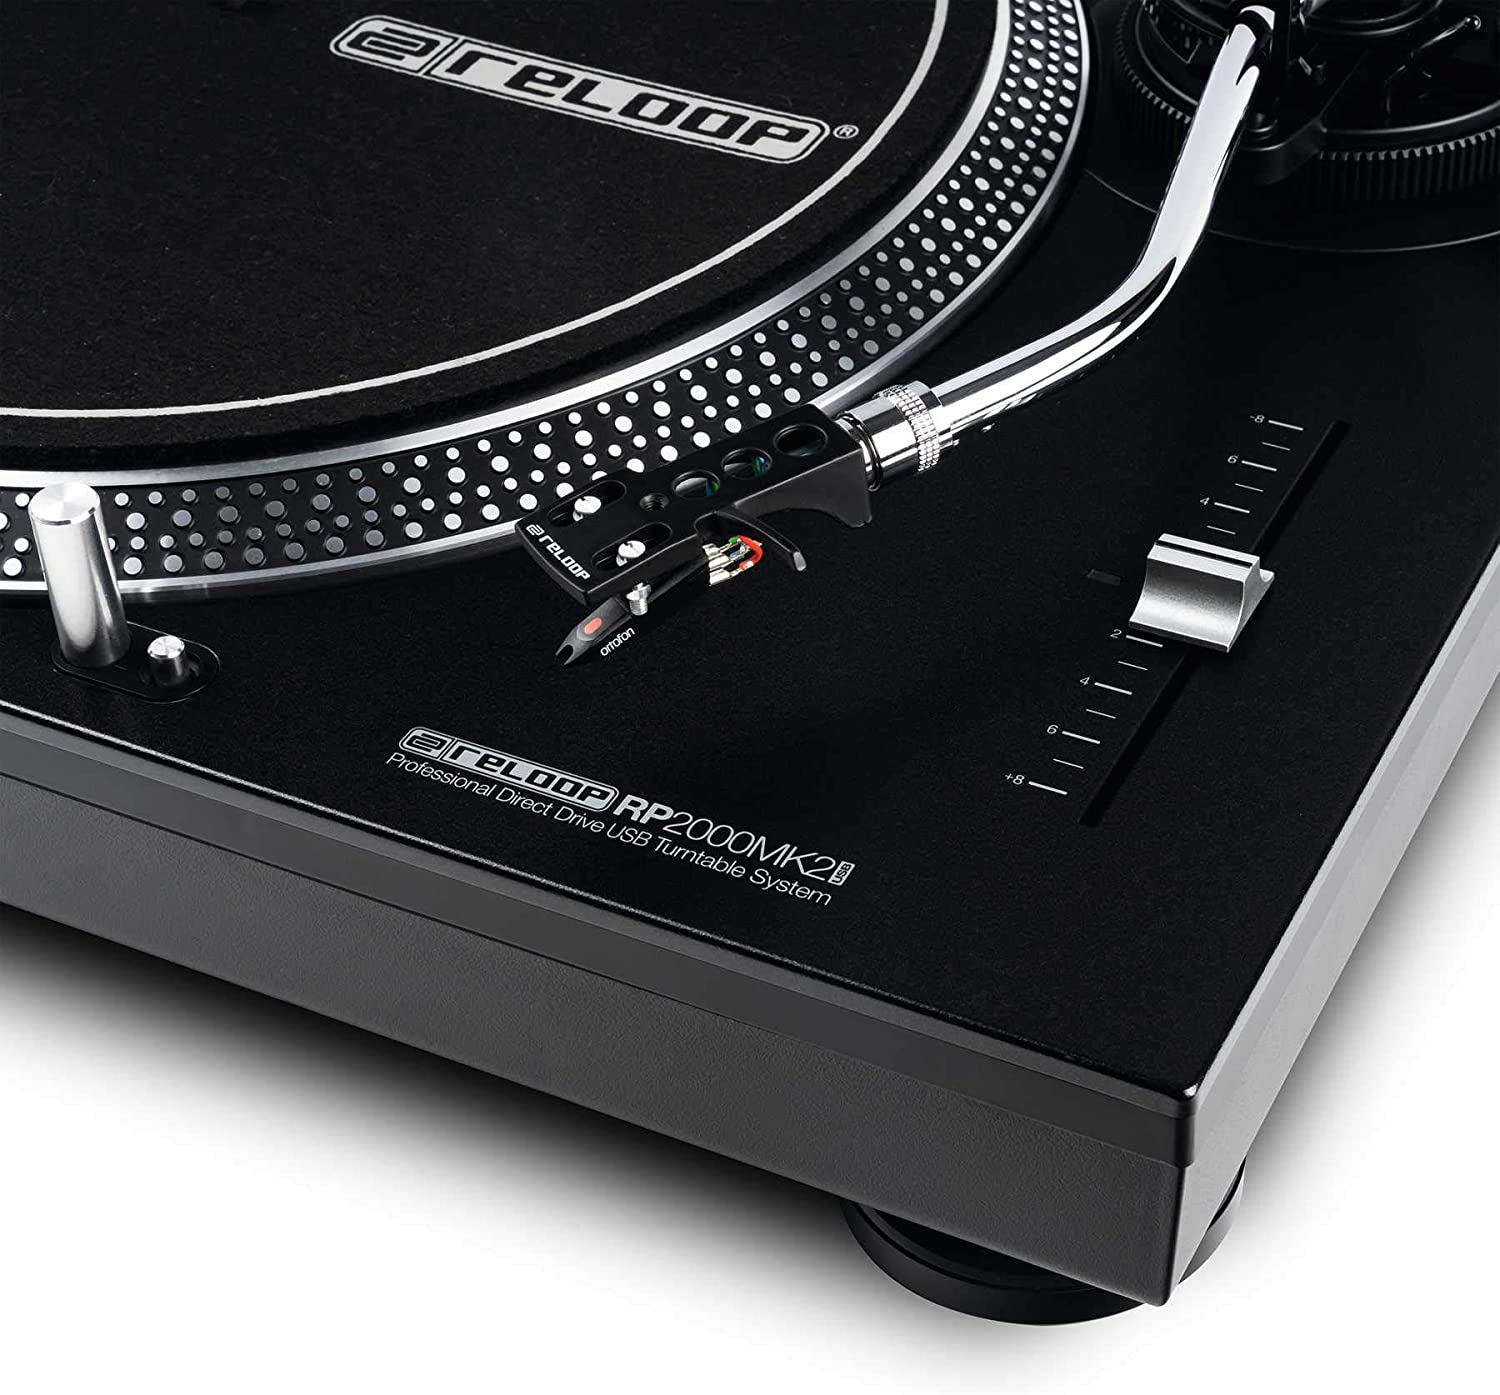 Reloop Professional Direct Drive USB Turntable System (AMS-RP-2000-USB-MK2)